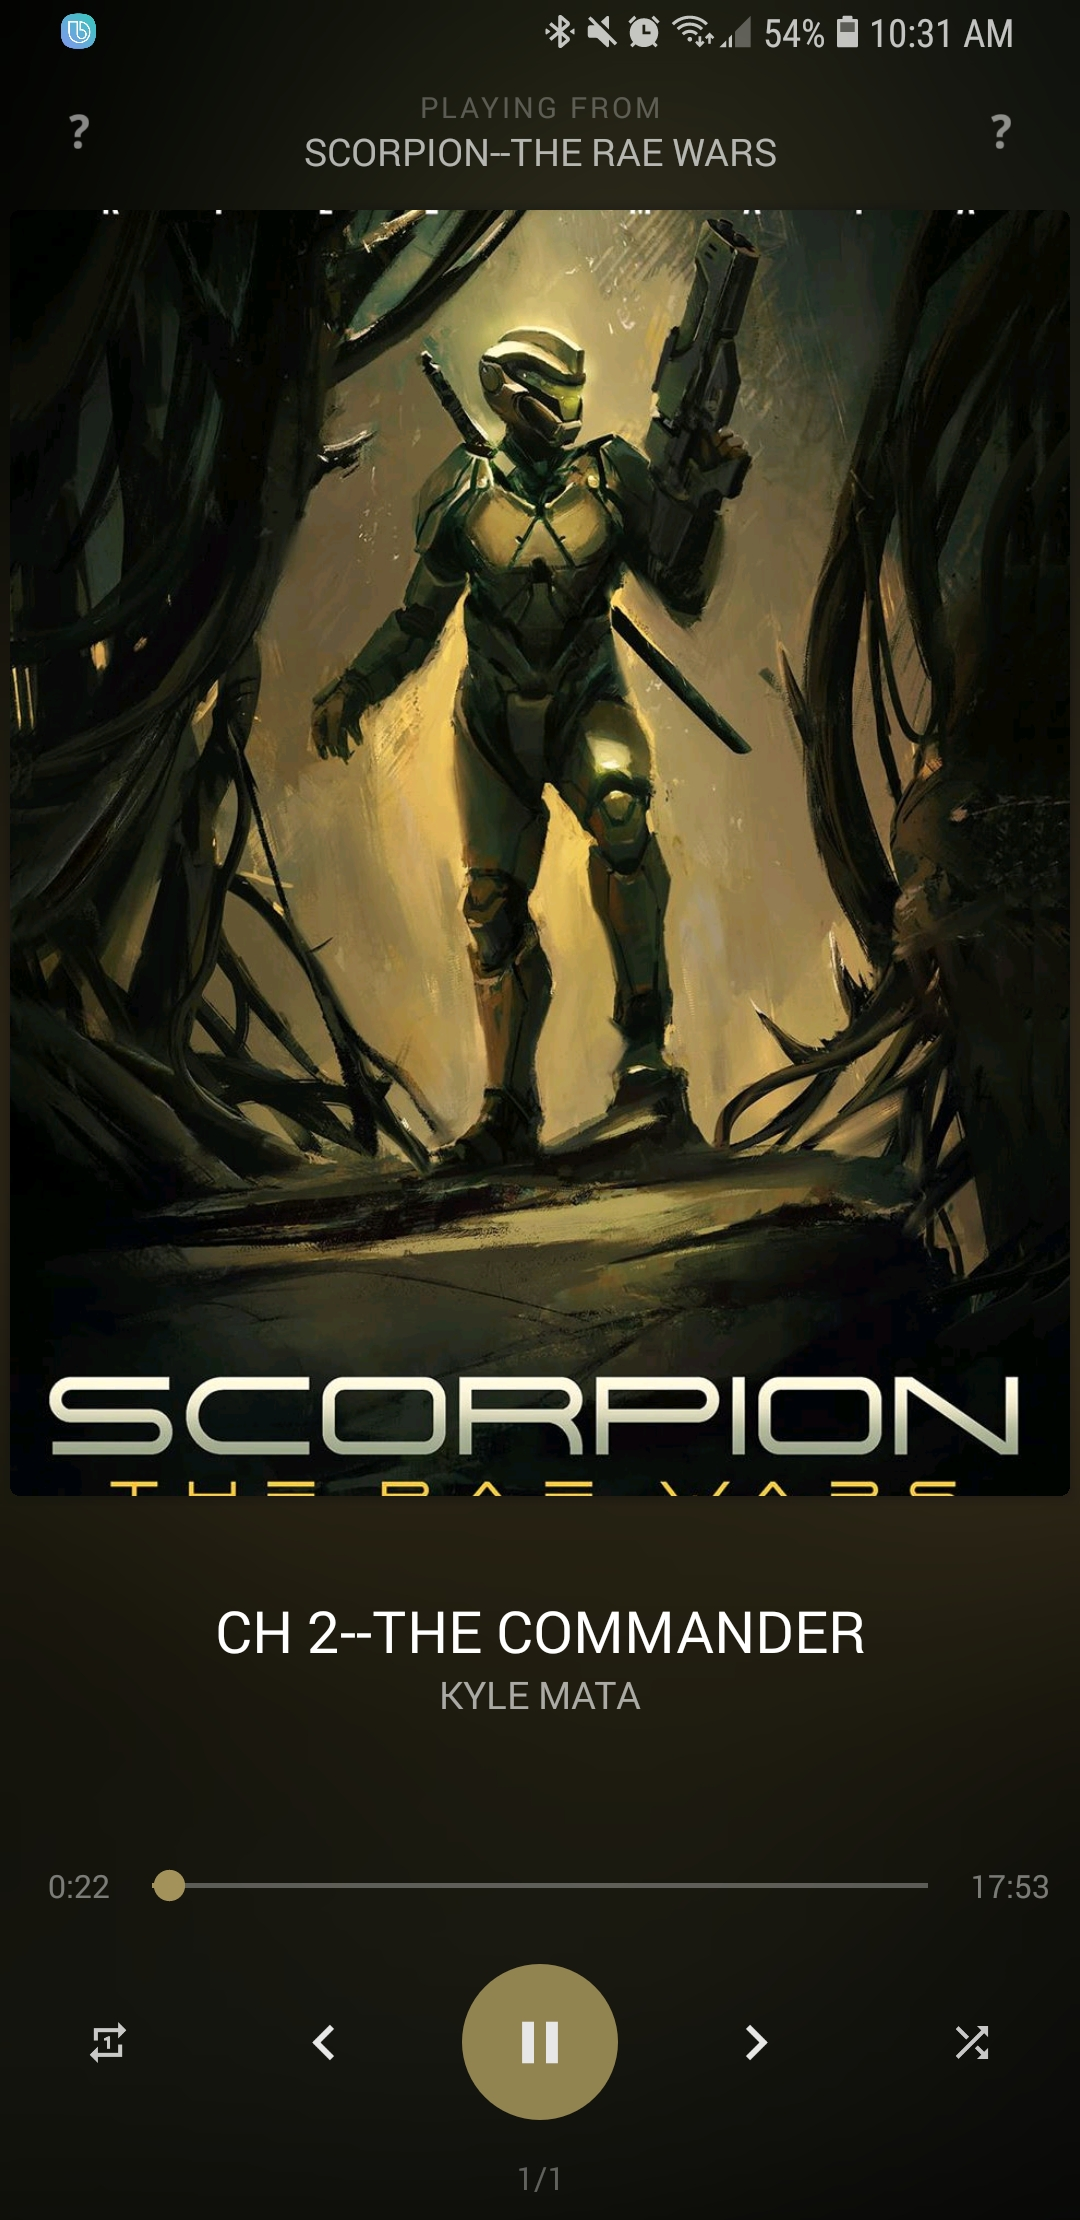 SCORPION: THE RAE WARS - Now Available on AUDIBLE.COM!